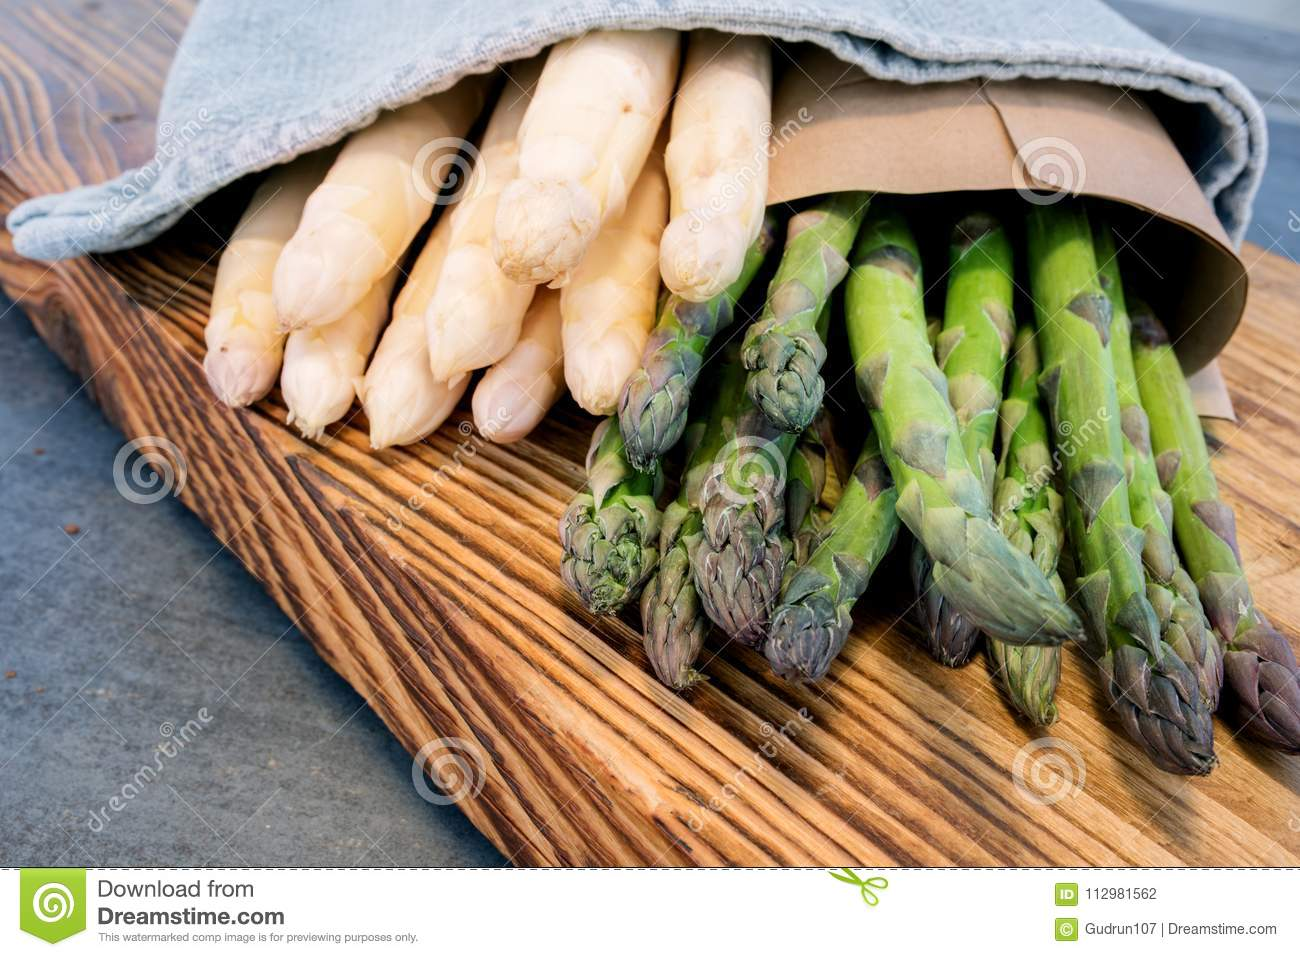 Asparagus tied on a wooden board